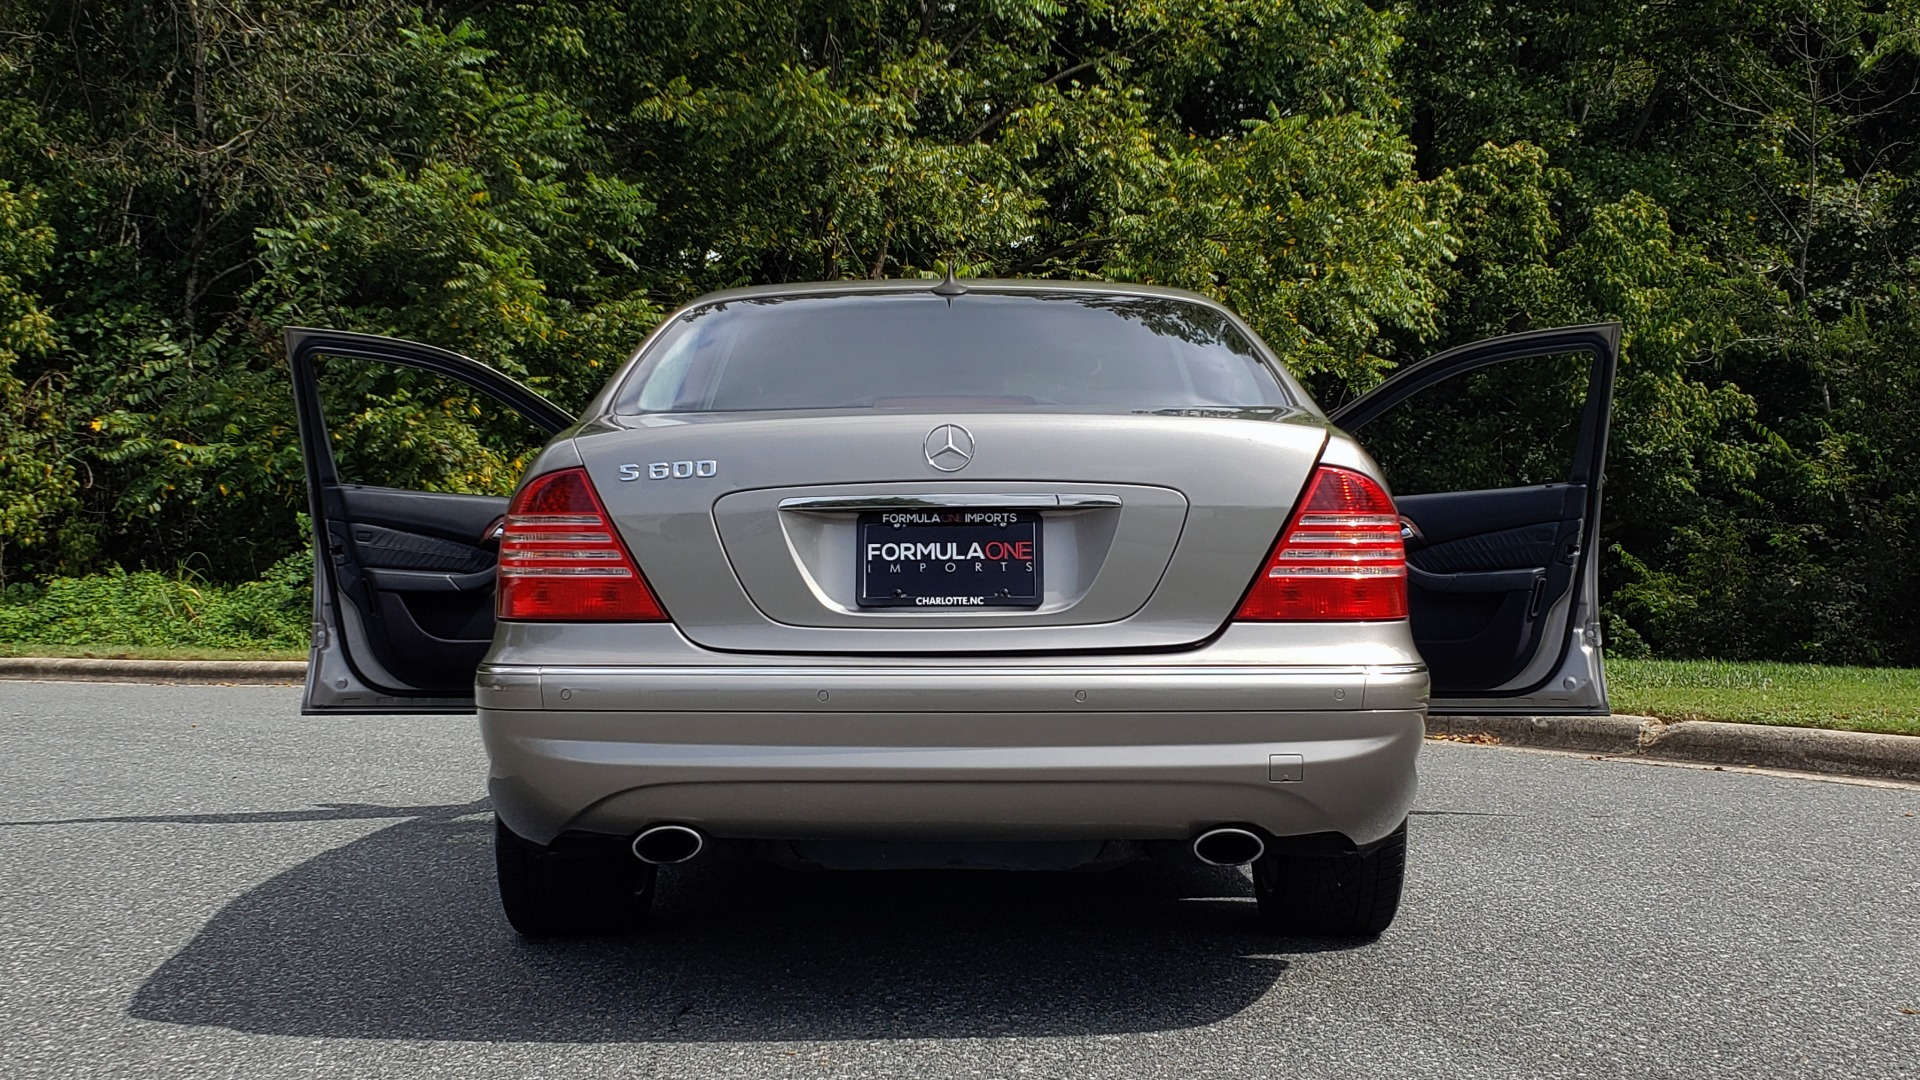 Used 2003 Mercedes-Benz S-CLASS S600 5.5L V12 SEDAN / SUNROOF / KEYLESS-GO / BOSE for sale Sold at Formula Imports in Charlotte NC 28227 25